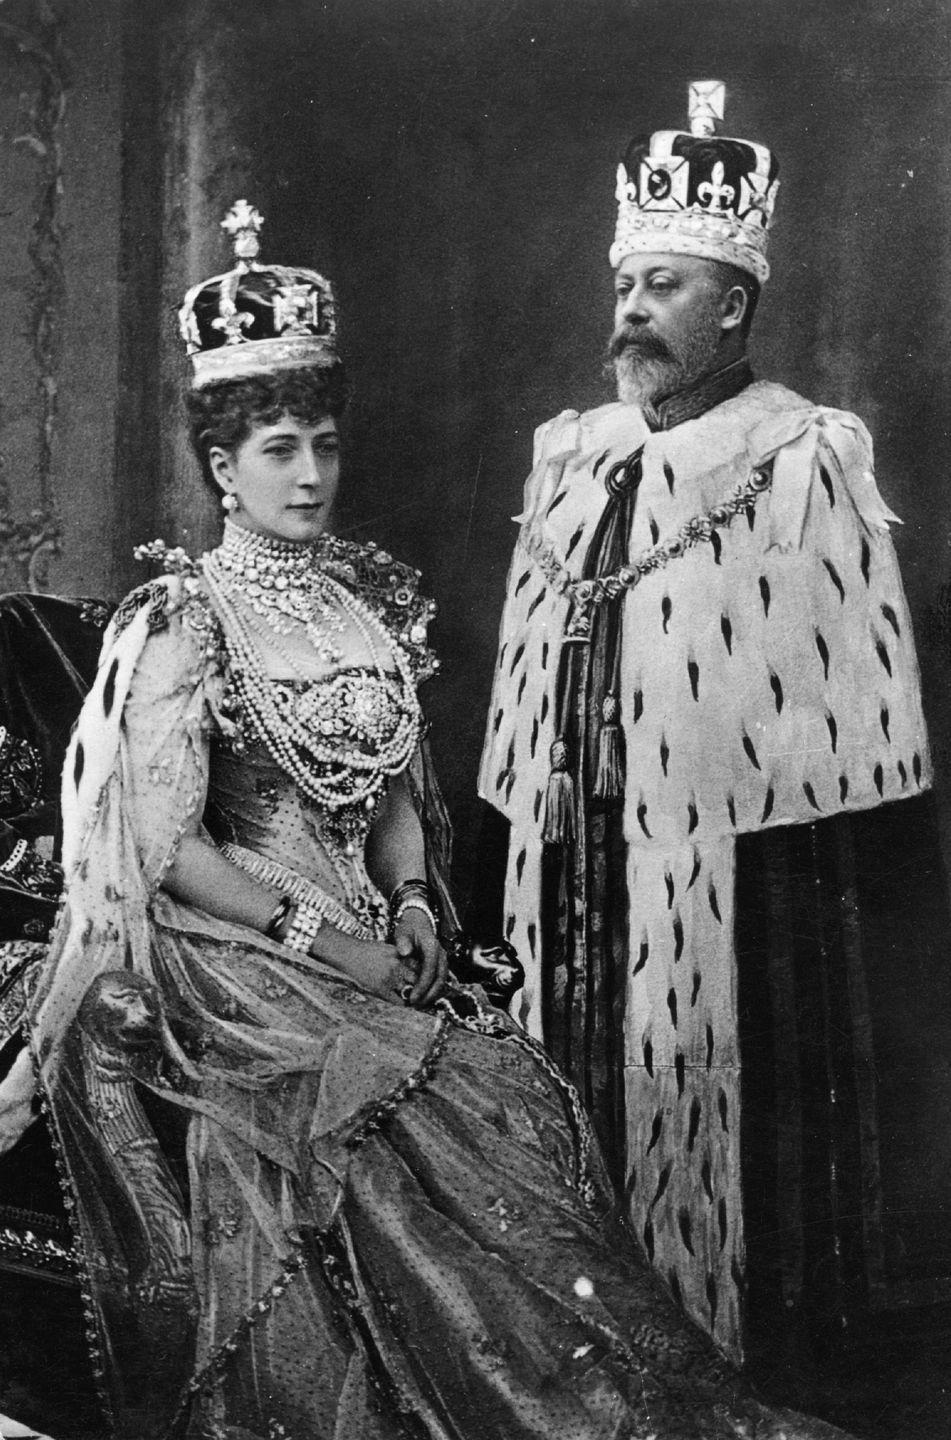 "<p>It's been reported that King Edward VII, who ruled the United Kingdom from 1901 to 1910, <a href=""https://www.thrillist.com/entertainment/nation/royal-affairs-kings-and-queens-who-had-mistresses-and-illegitimate-children"" rel=""nofollow noopener"" target=""_blank"" data-ylk=""slk:had more than 50 affairs"" class=""link rapid-noclick-resp"">had more than 50 affairs</a>, including with Winston Churchill's mom. He's presumed to have fathered many children outside his marriage, although he never acknowledged them. He had six legitimate heirs to the throne with his wife, Queen Alexandra, including Queen Elizabeth II's grandfather George V. Sadly, one of the six died as a child.</p>"